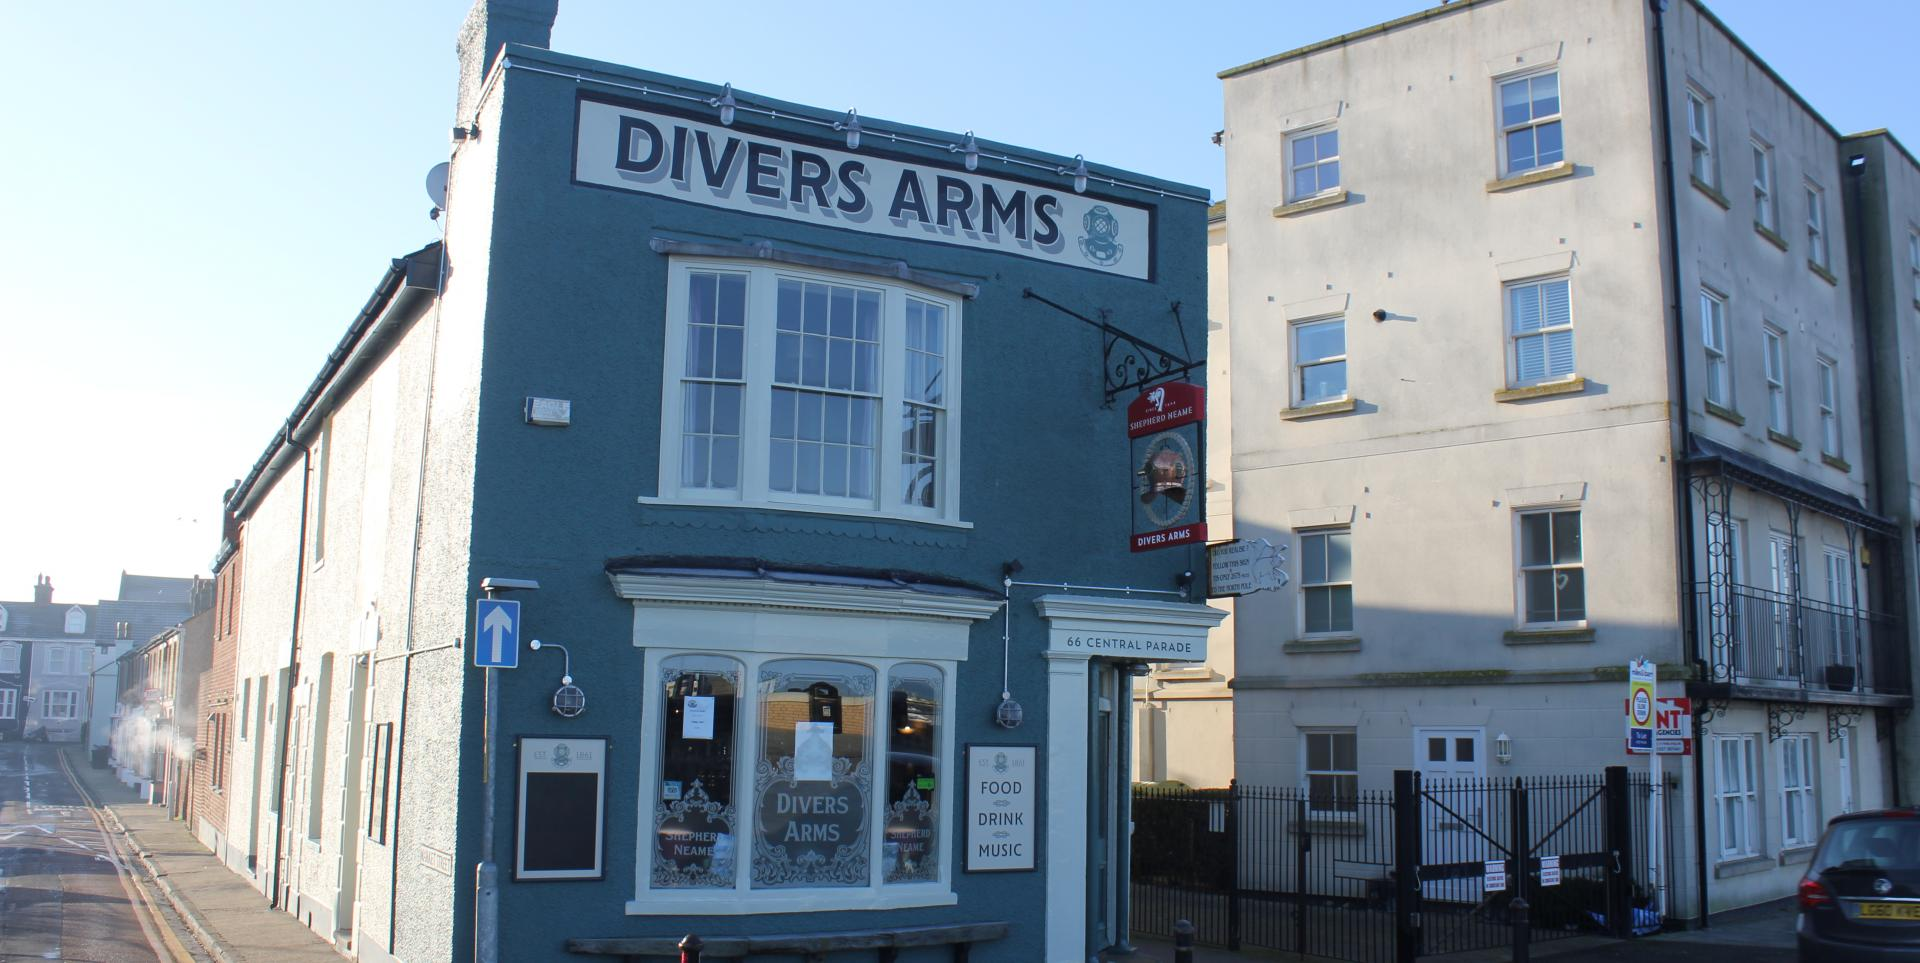 Divers Arms, Herne Bay, Exterior